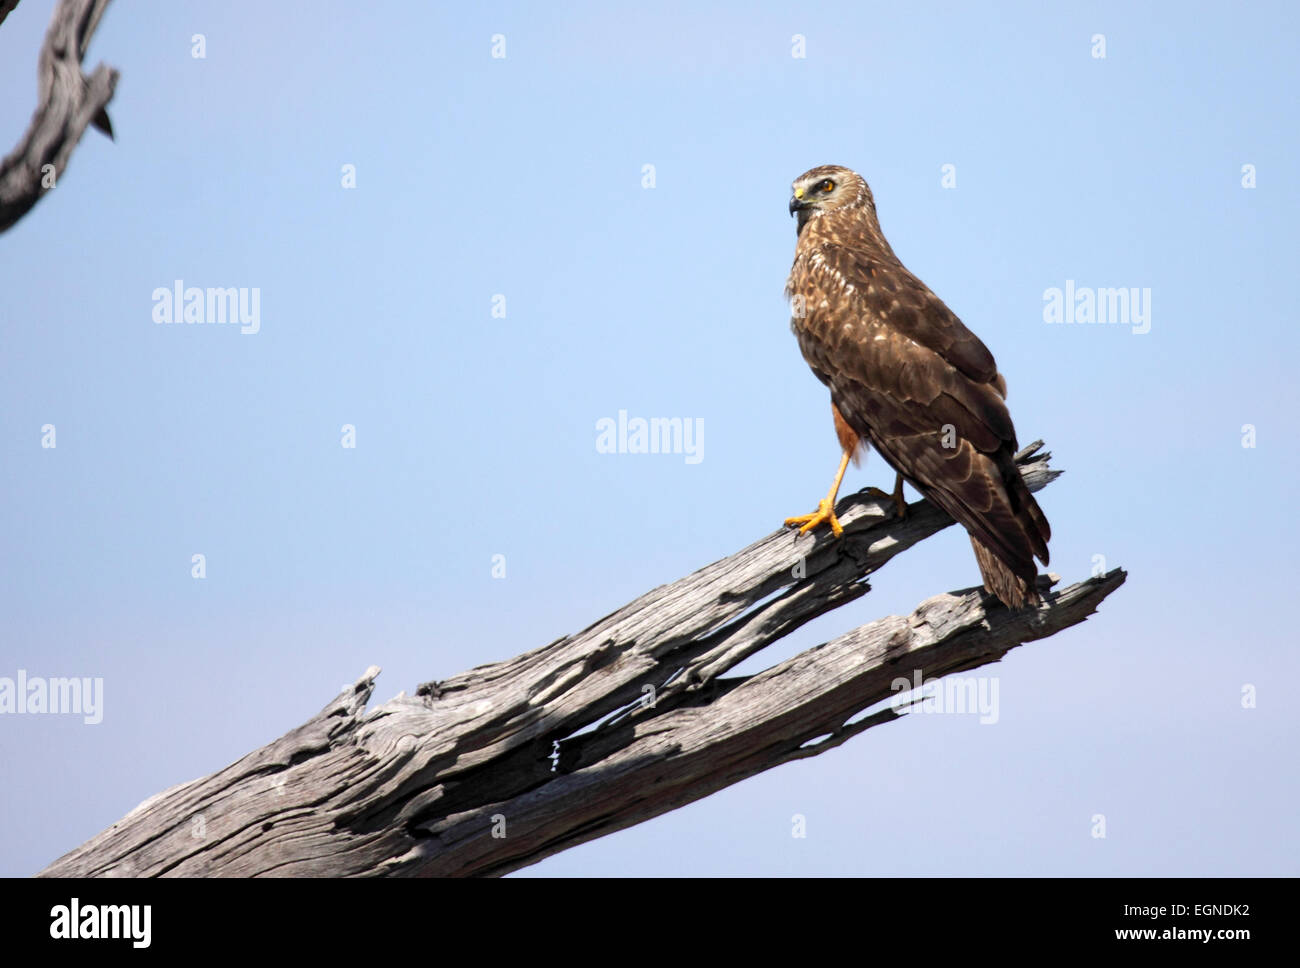 African marsh harrier perched on dead branch of tree in Botswana - Stock Image